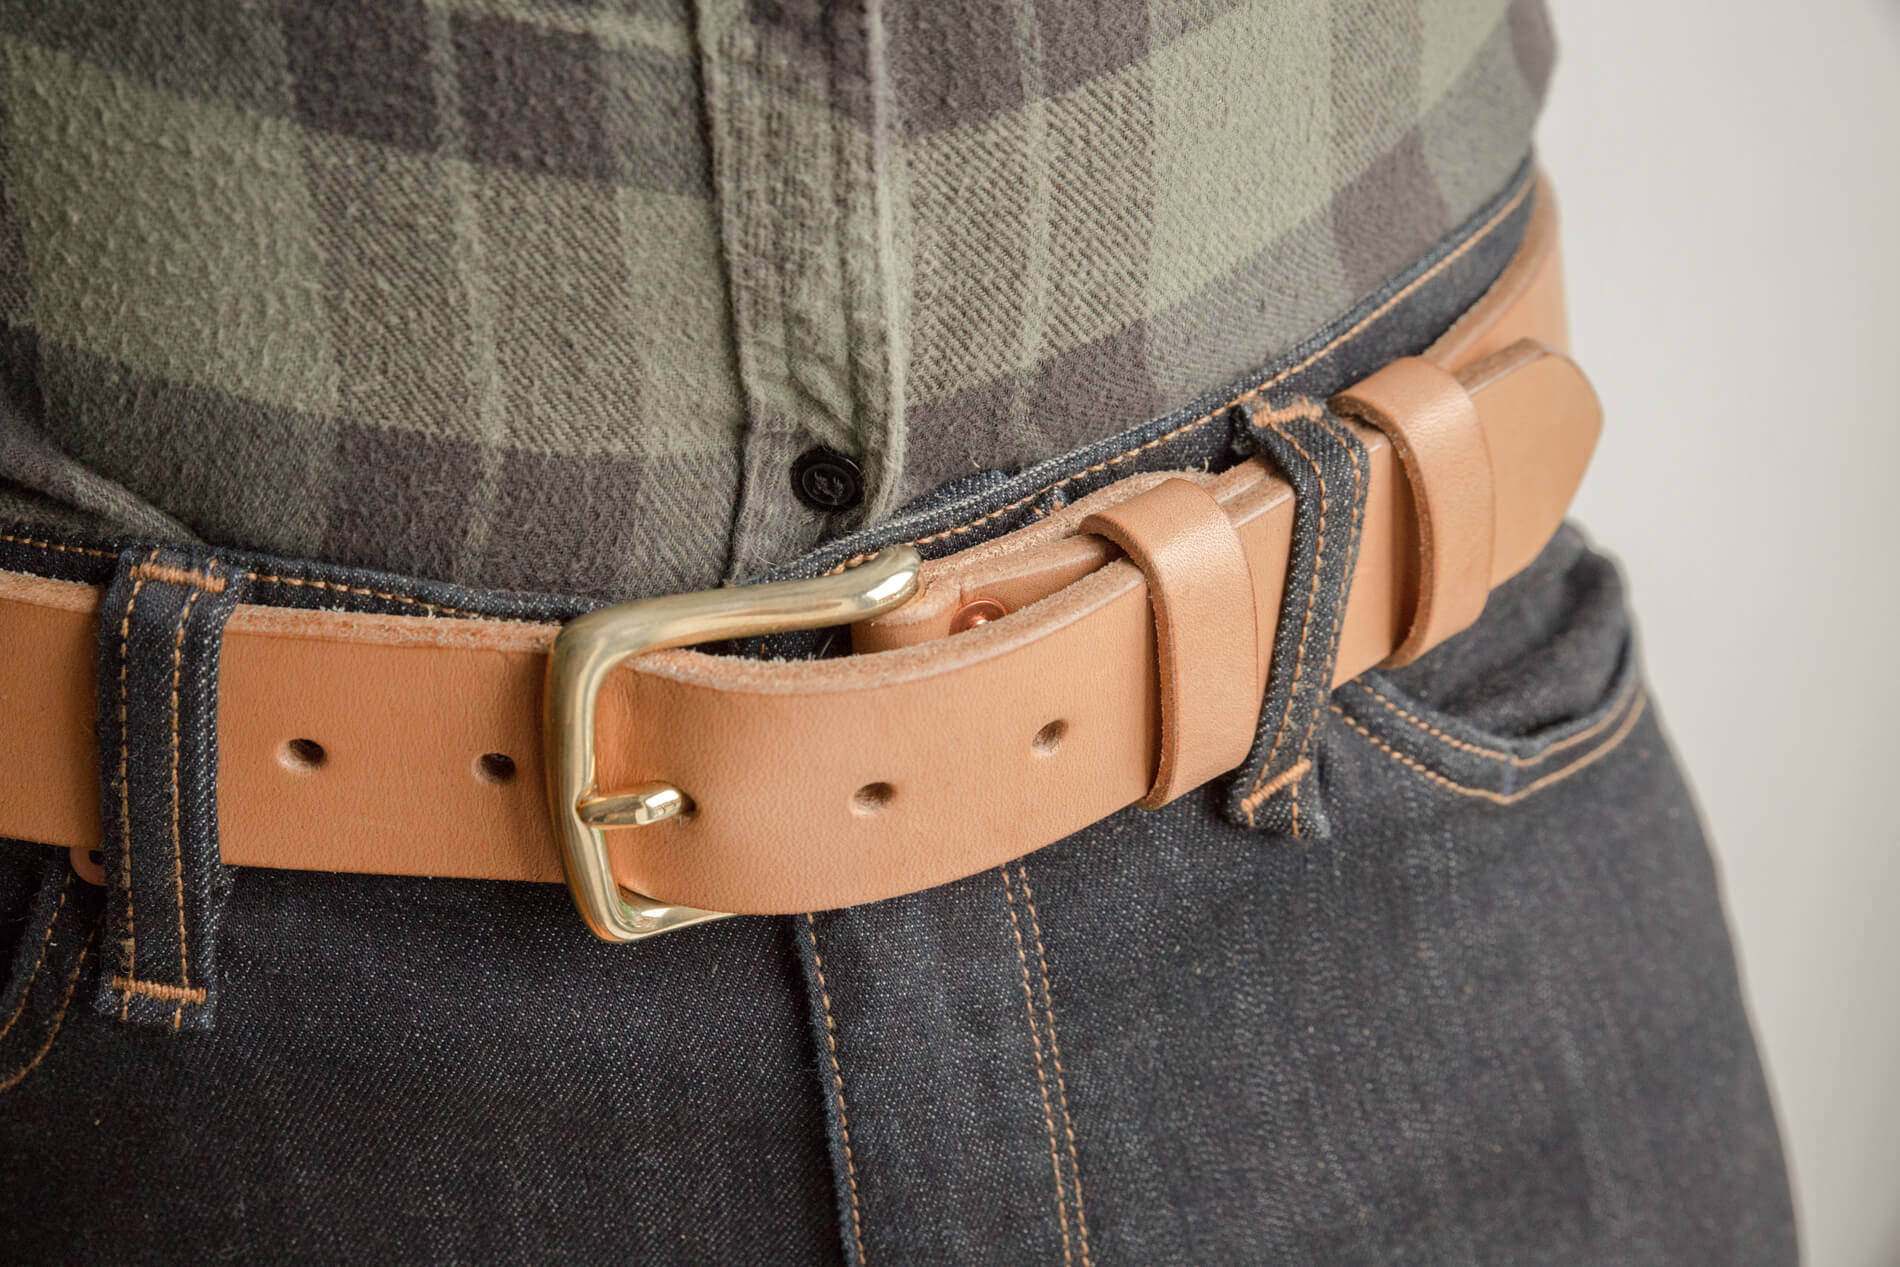 Handmade leather belt on blue denim jeans